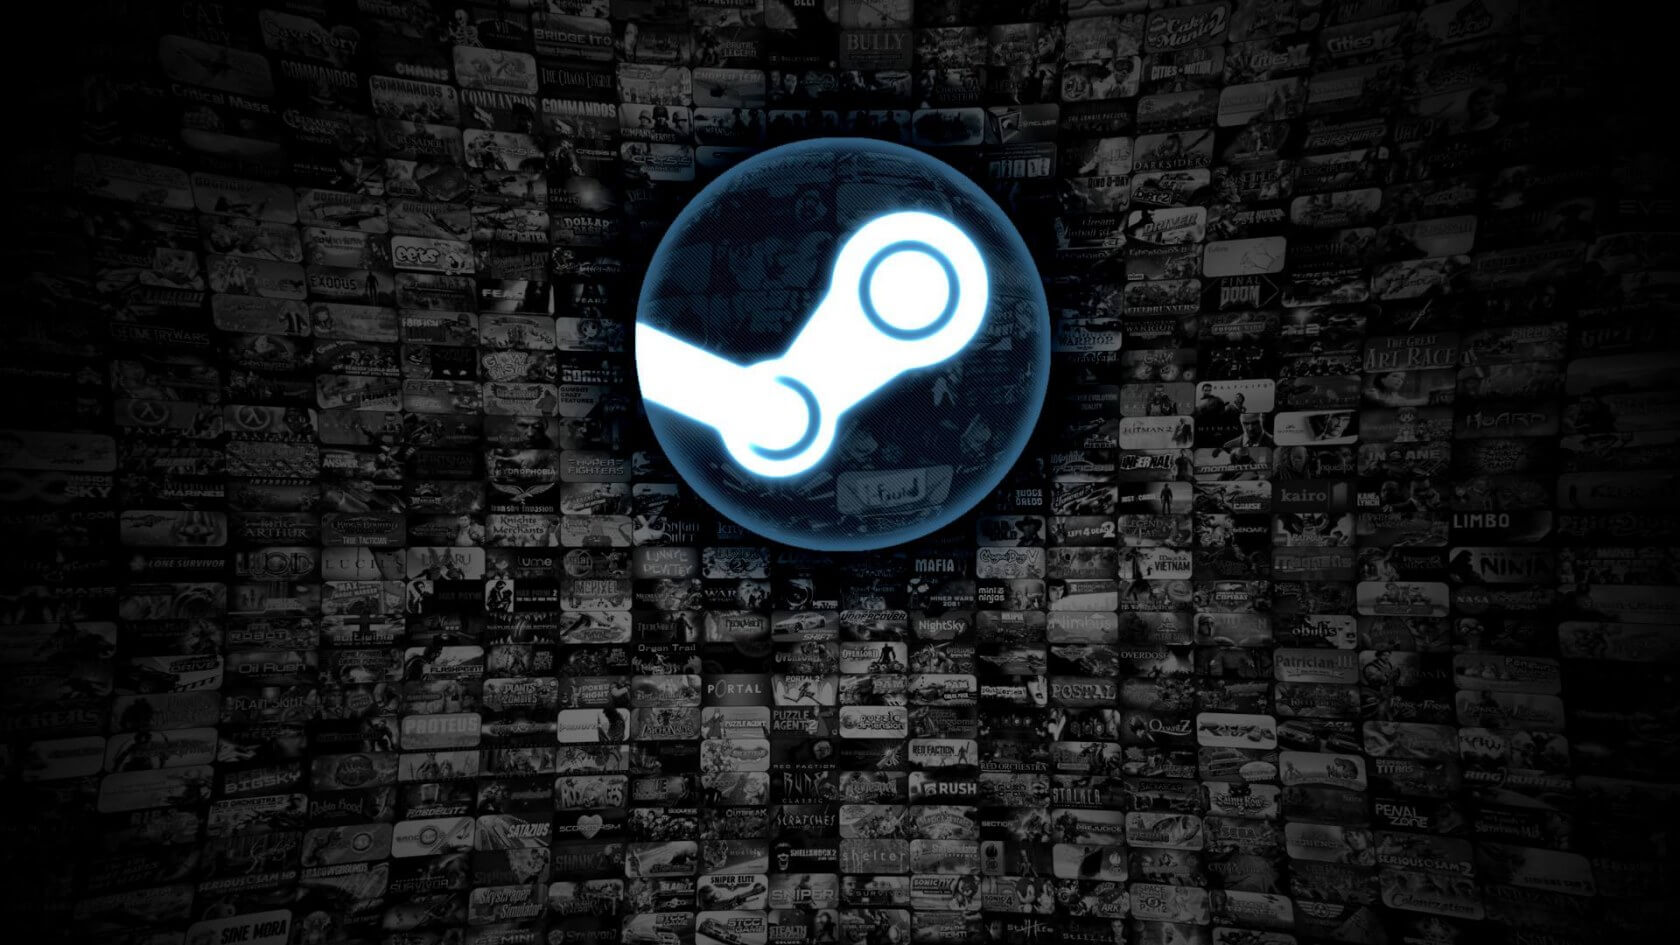 Valve extend Steam Link out of the home and networking API to all developers